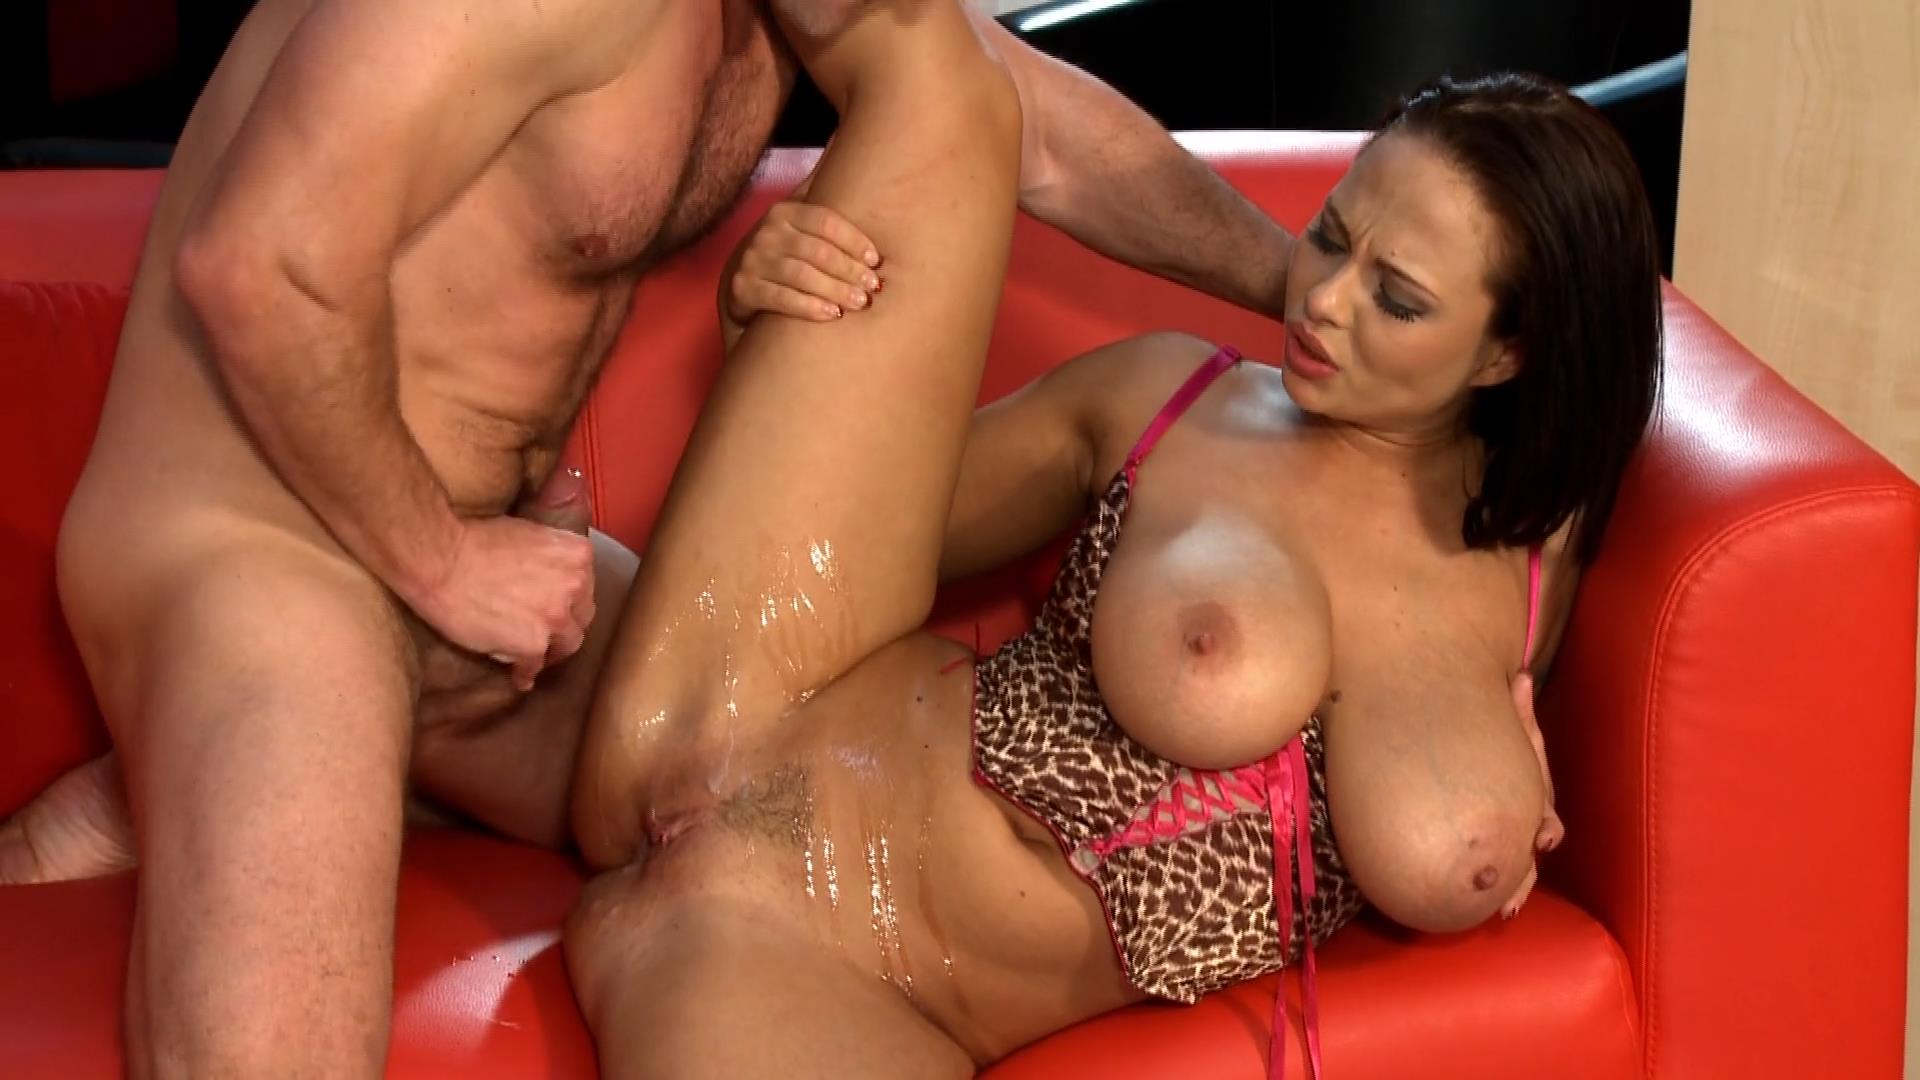 xxx-tits-videos-jennifer-oneill-hot-sex